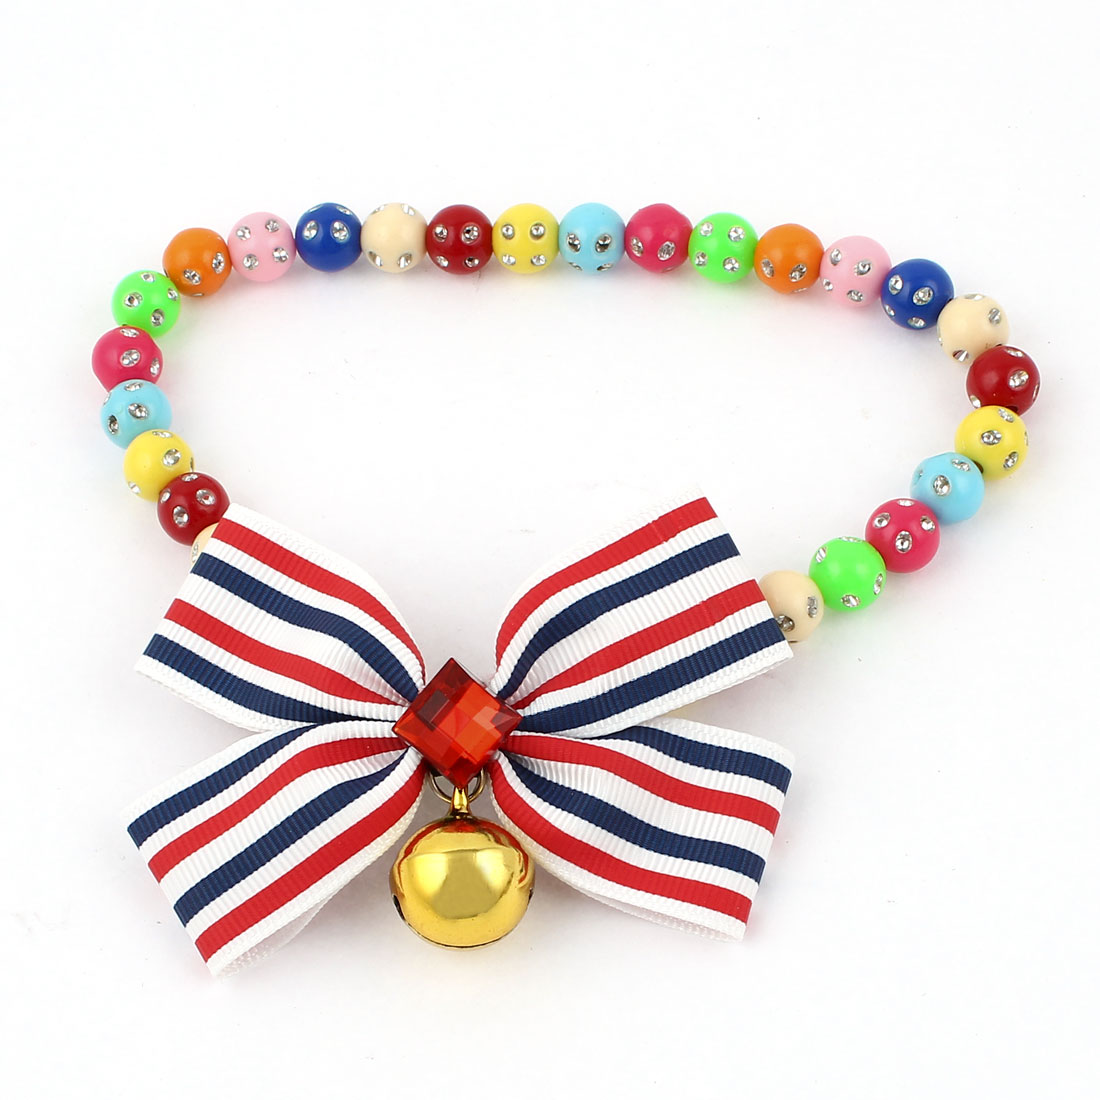 Faux Crystal Bowtie Accent Pet Dog Plastic Beads Collar Necklace Assorted Color M